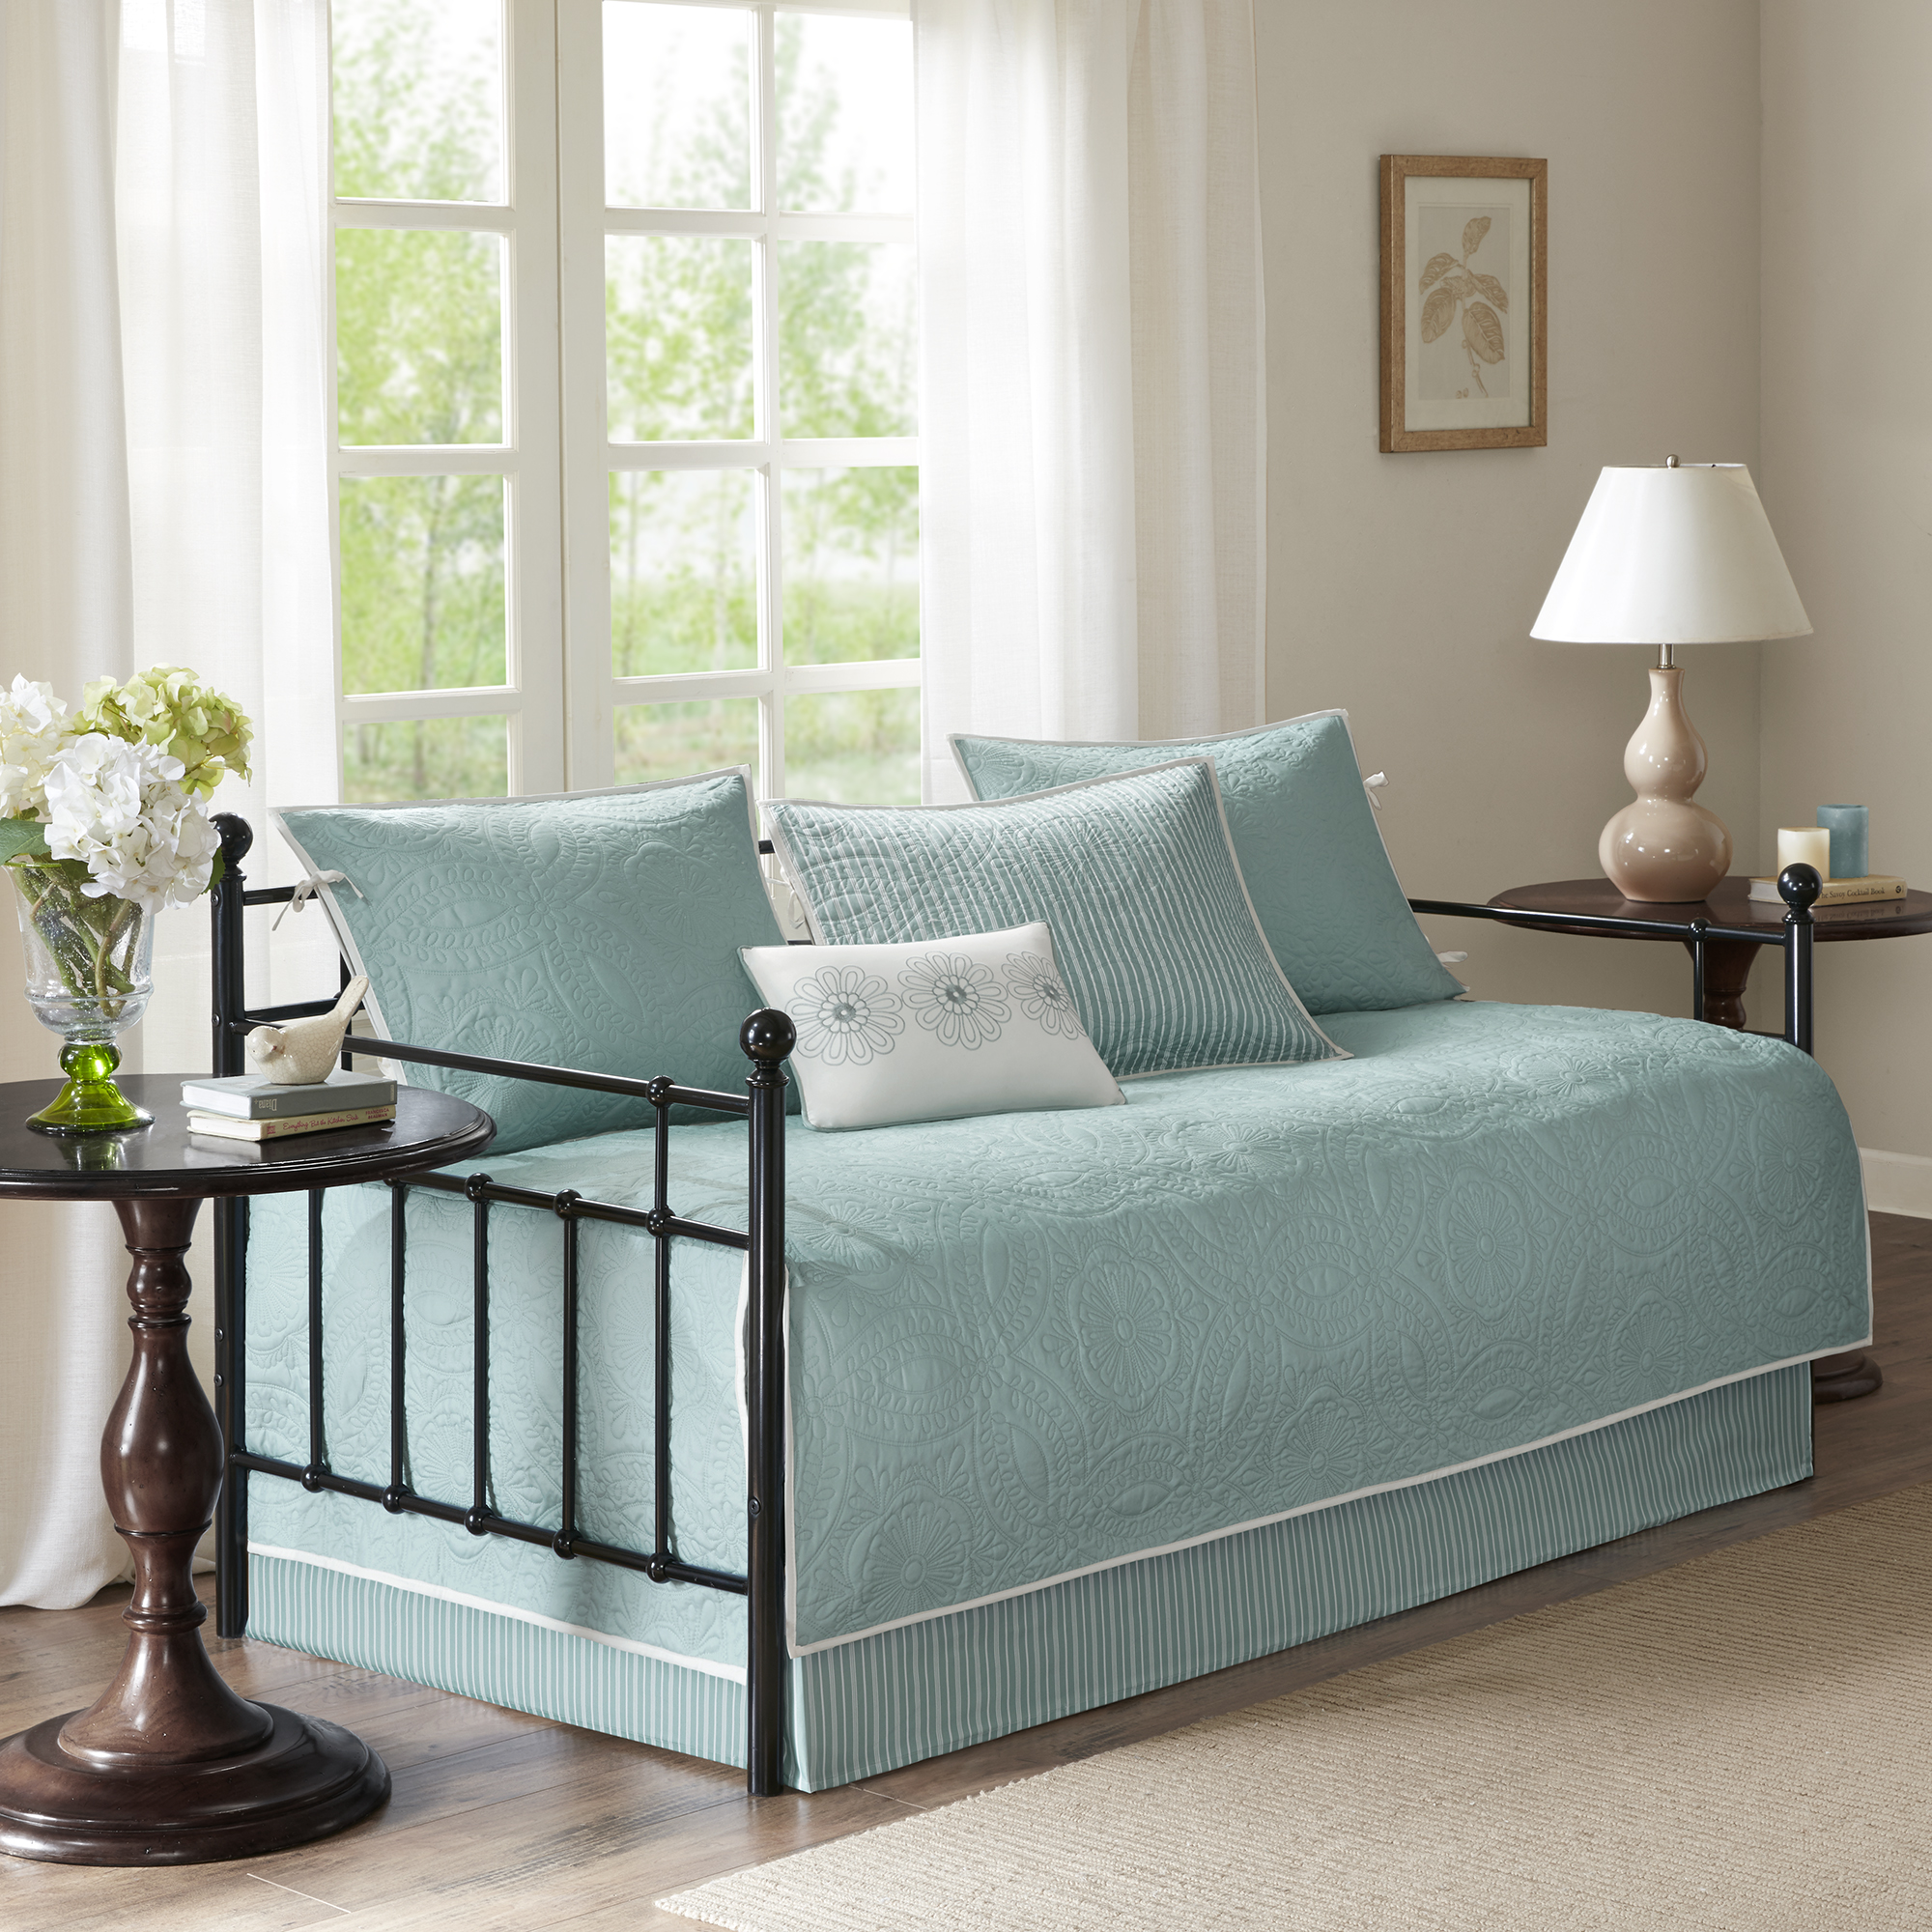 Home Essence Natalie 6 Piece Quilted Daybed Cover Set